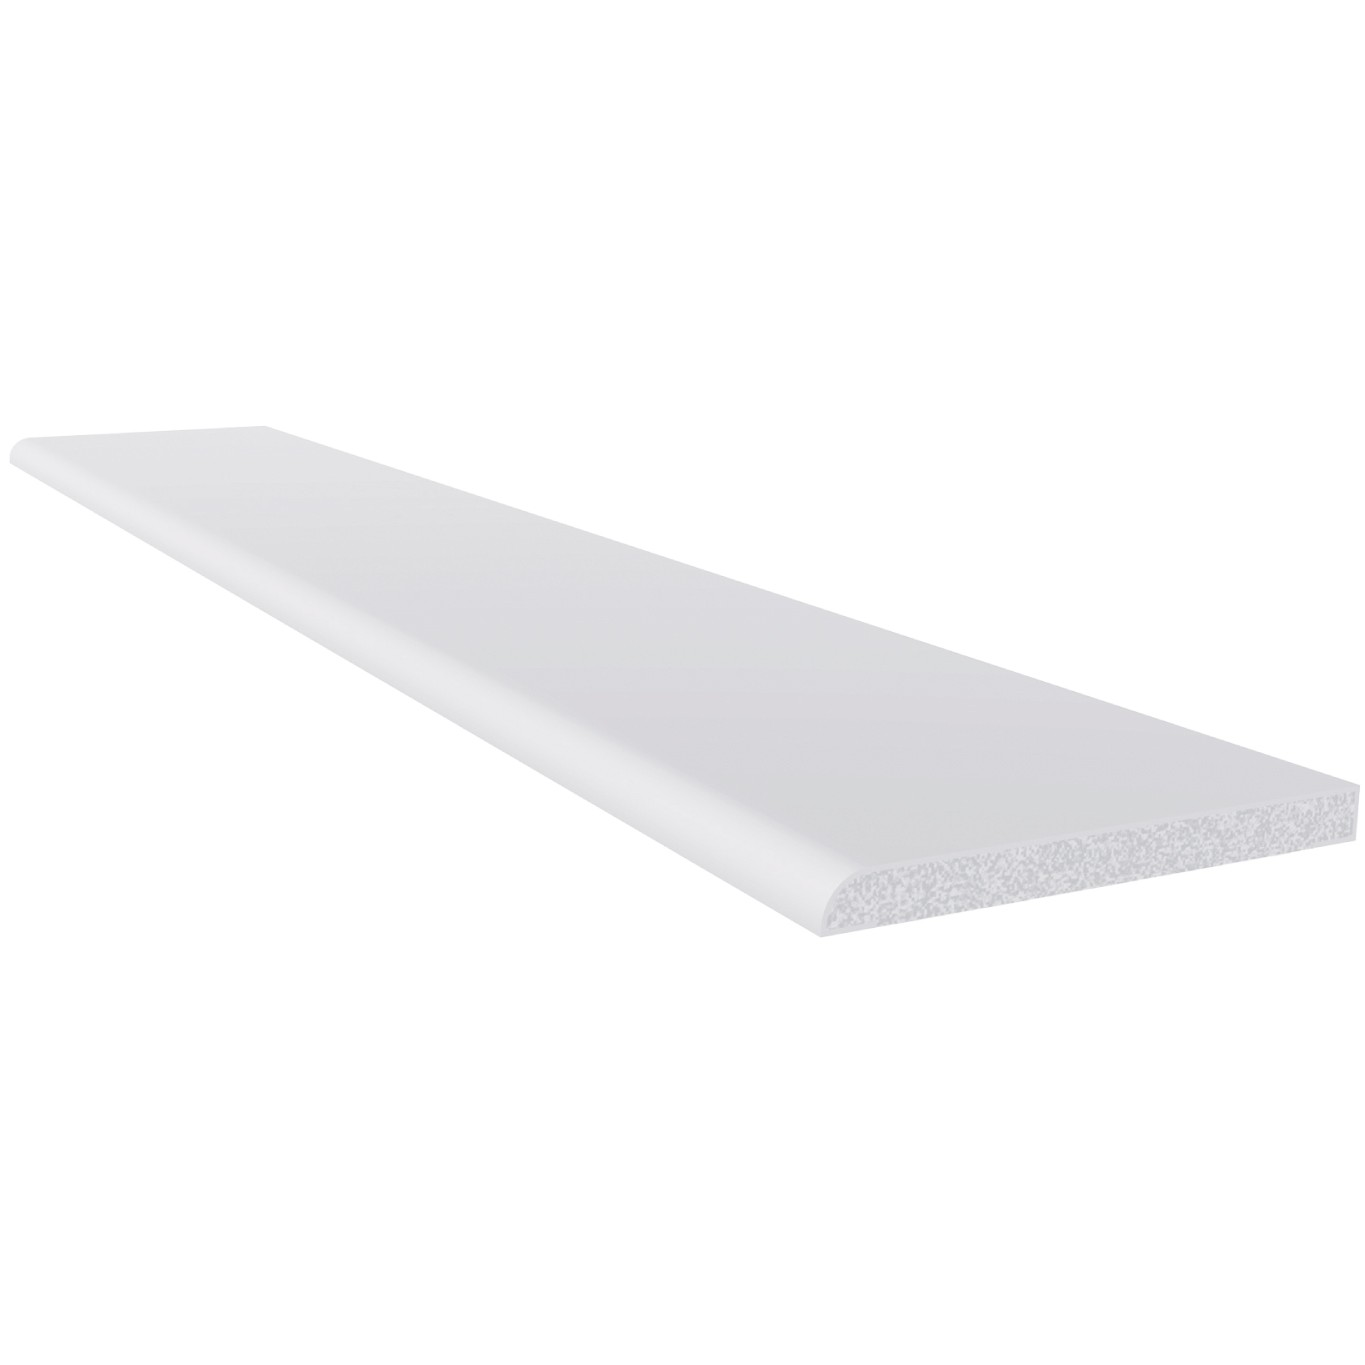 Freefoam 6mm Plastic Architrave - White, 60mm, 2.5 metre